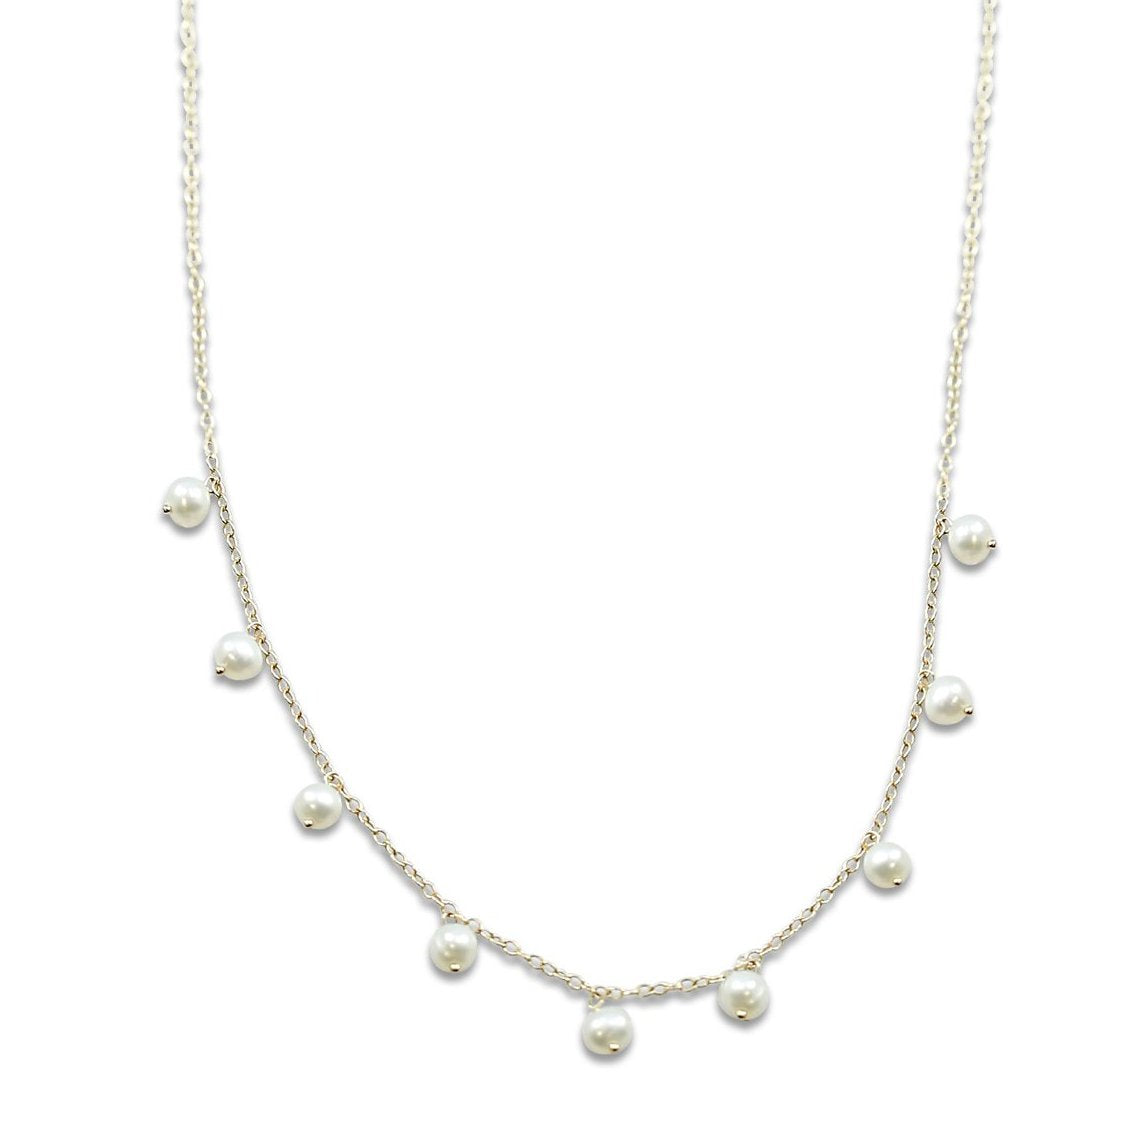 14k yellow gold freshwater pearl necklace with 9 pearls